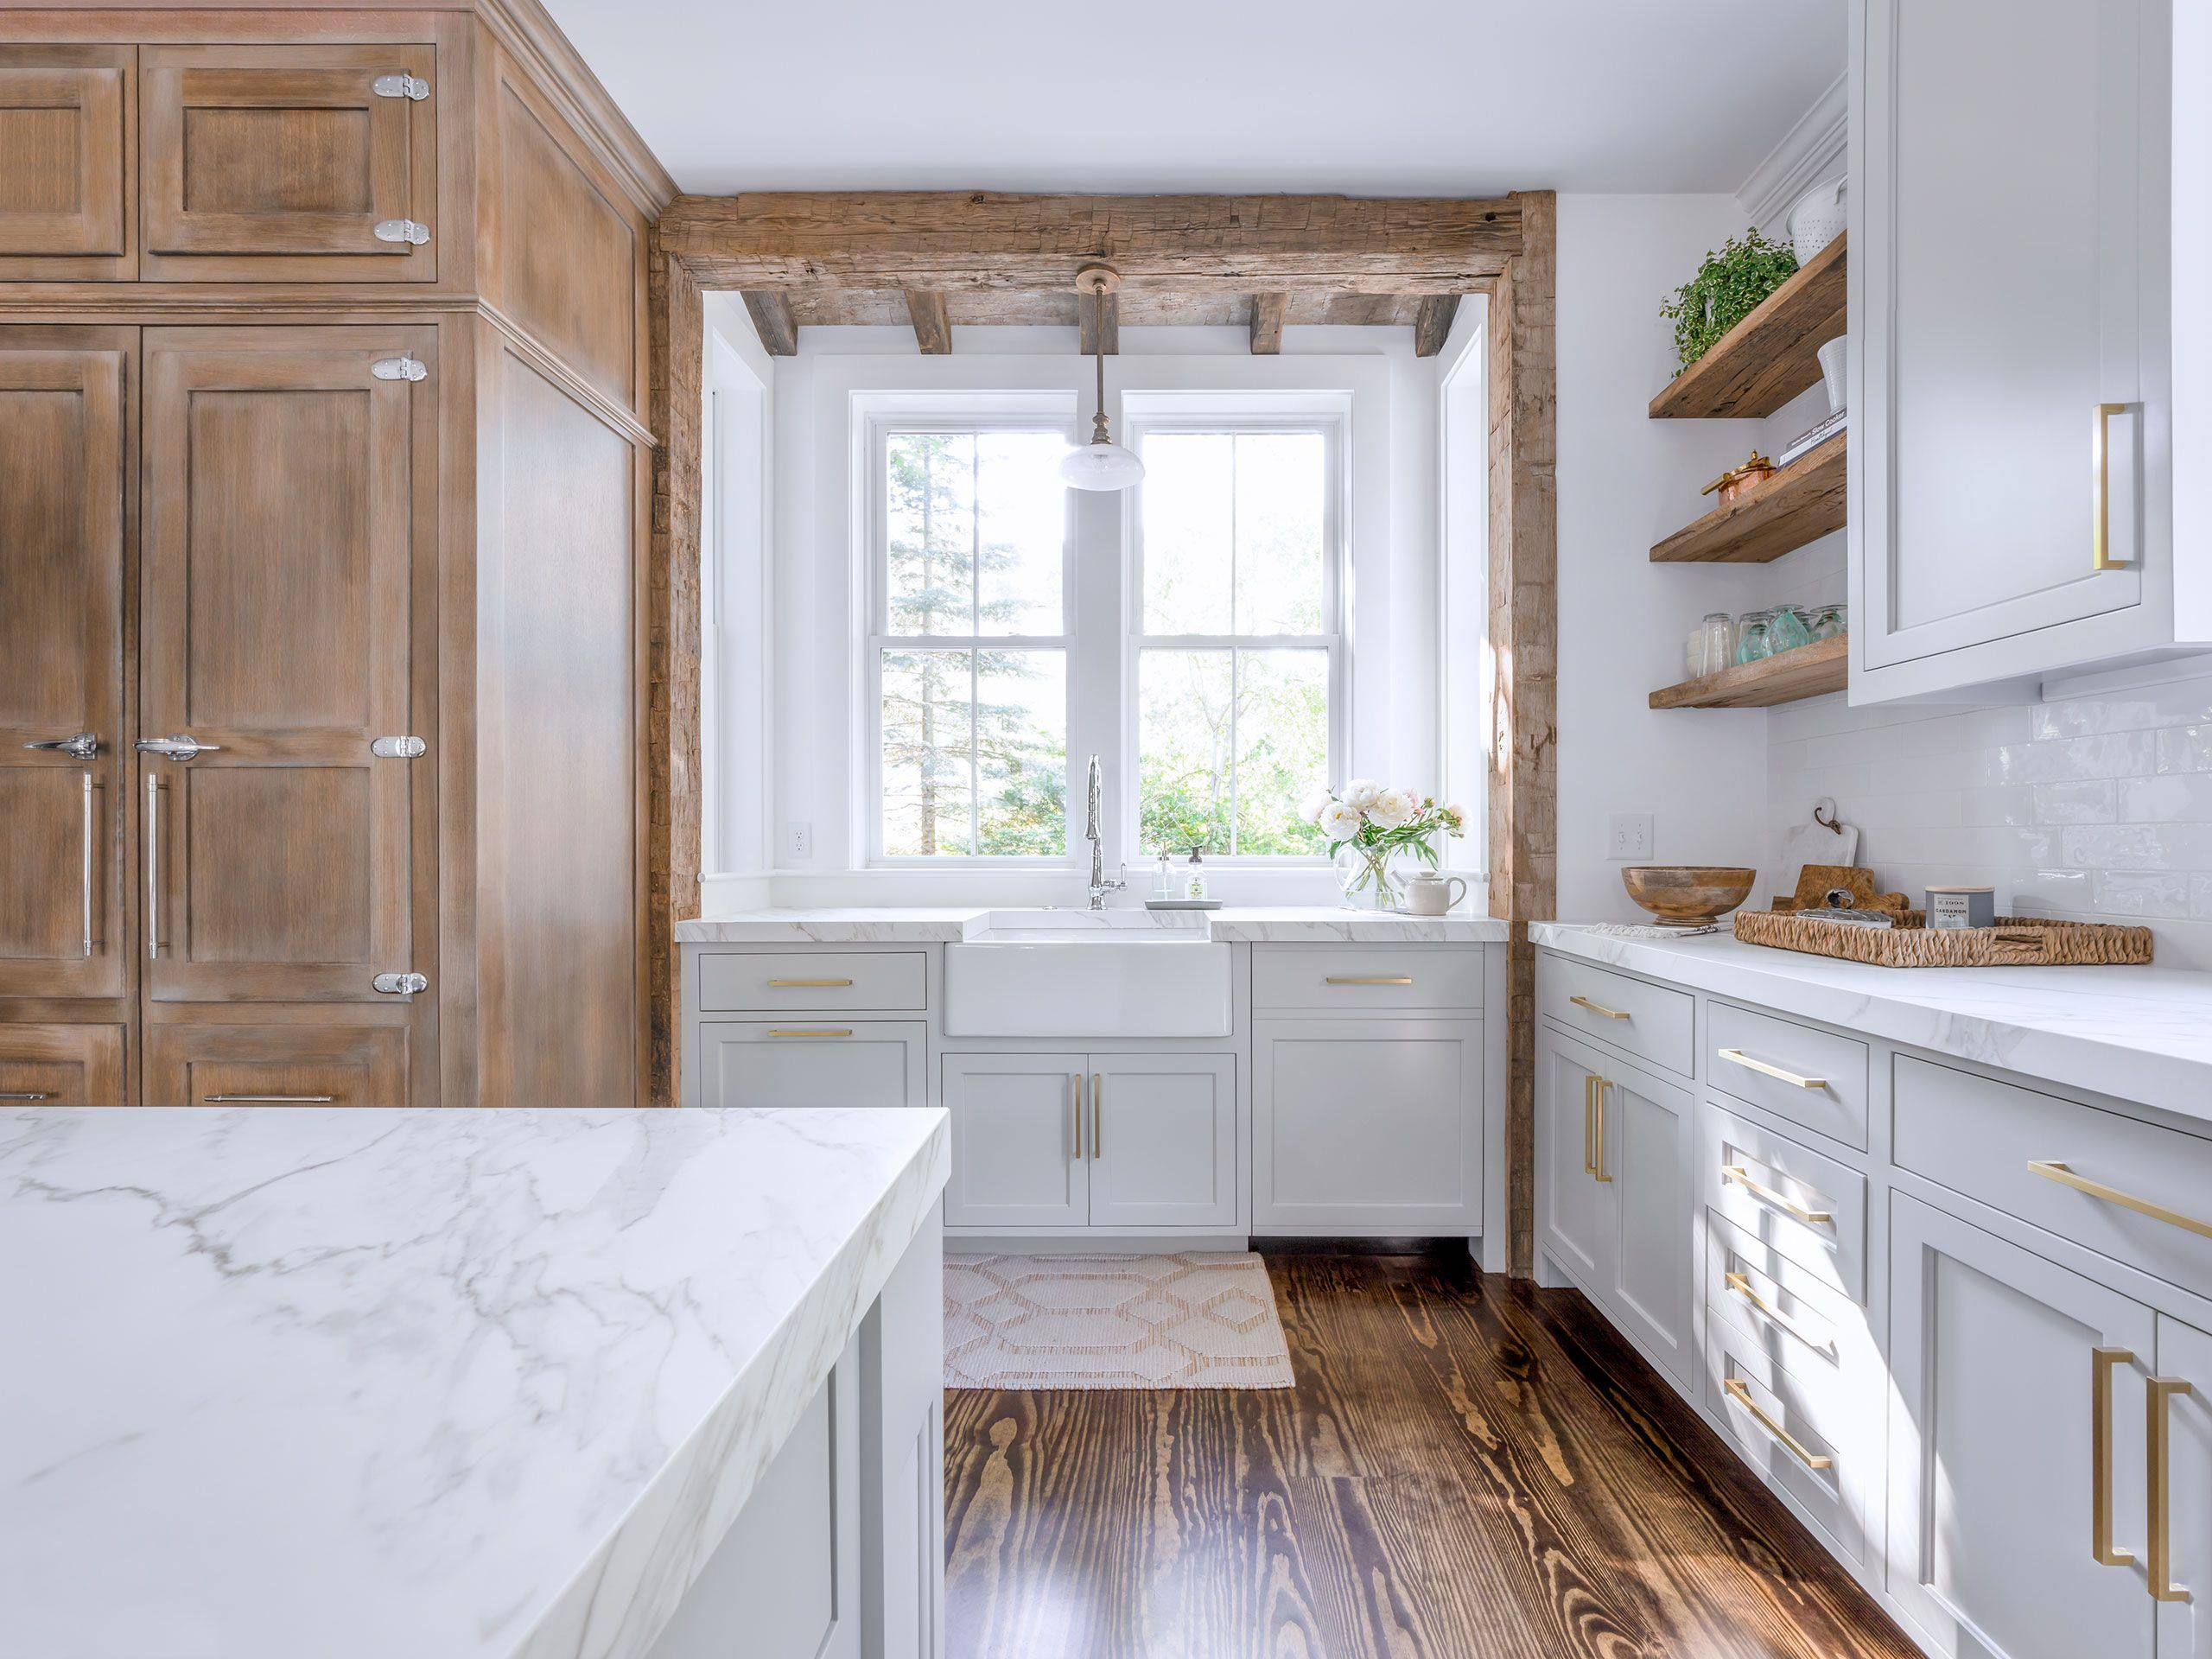 Remodeling Foreclosure Home In 2020 Kitchen Design New Kitchen Cabinets Home Decor Kitchen